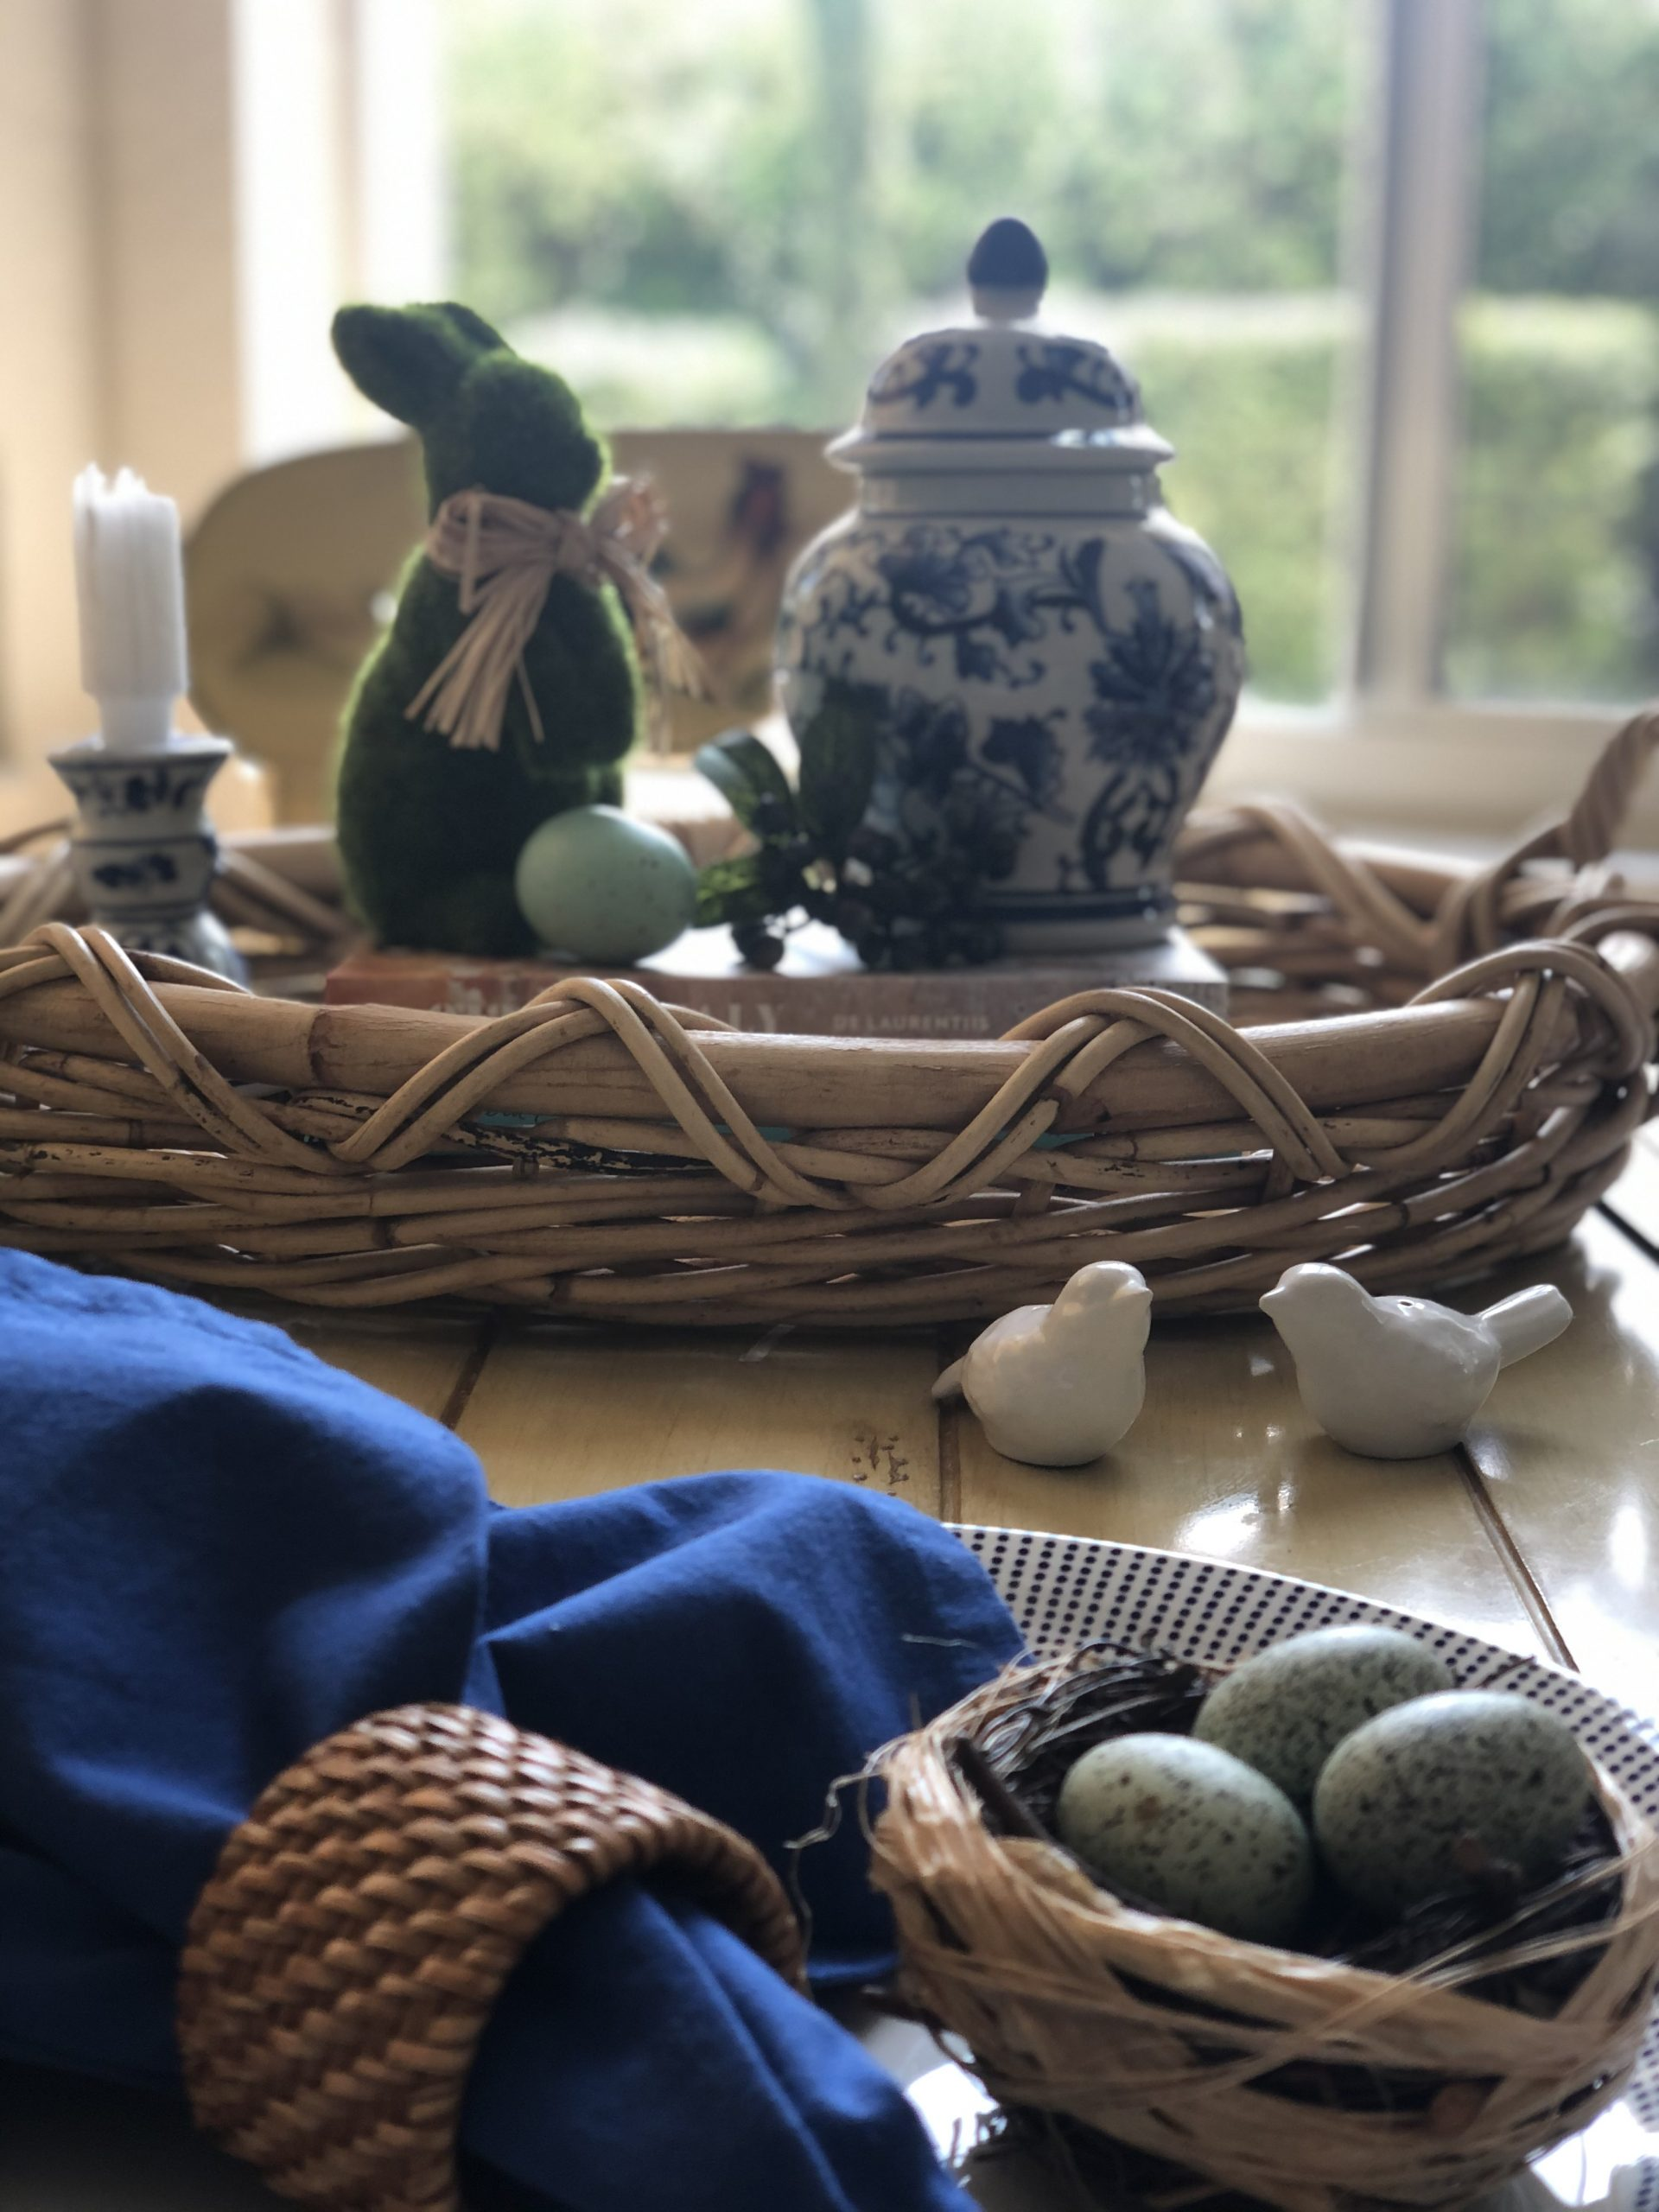 Breakfast Table Setting With Bird Nests With Eggs, Blue And White Ginger Jar, Moss Bunny And Natural Woven Tray And Napkin Rings